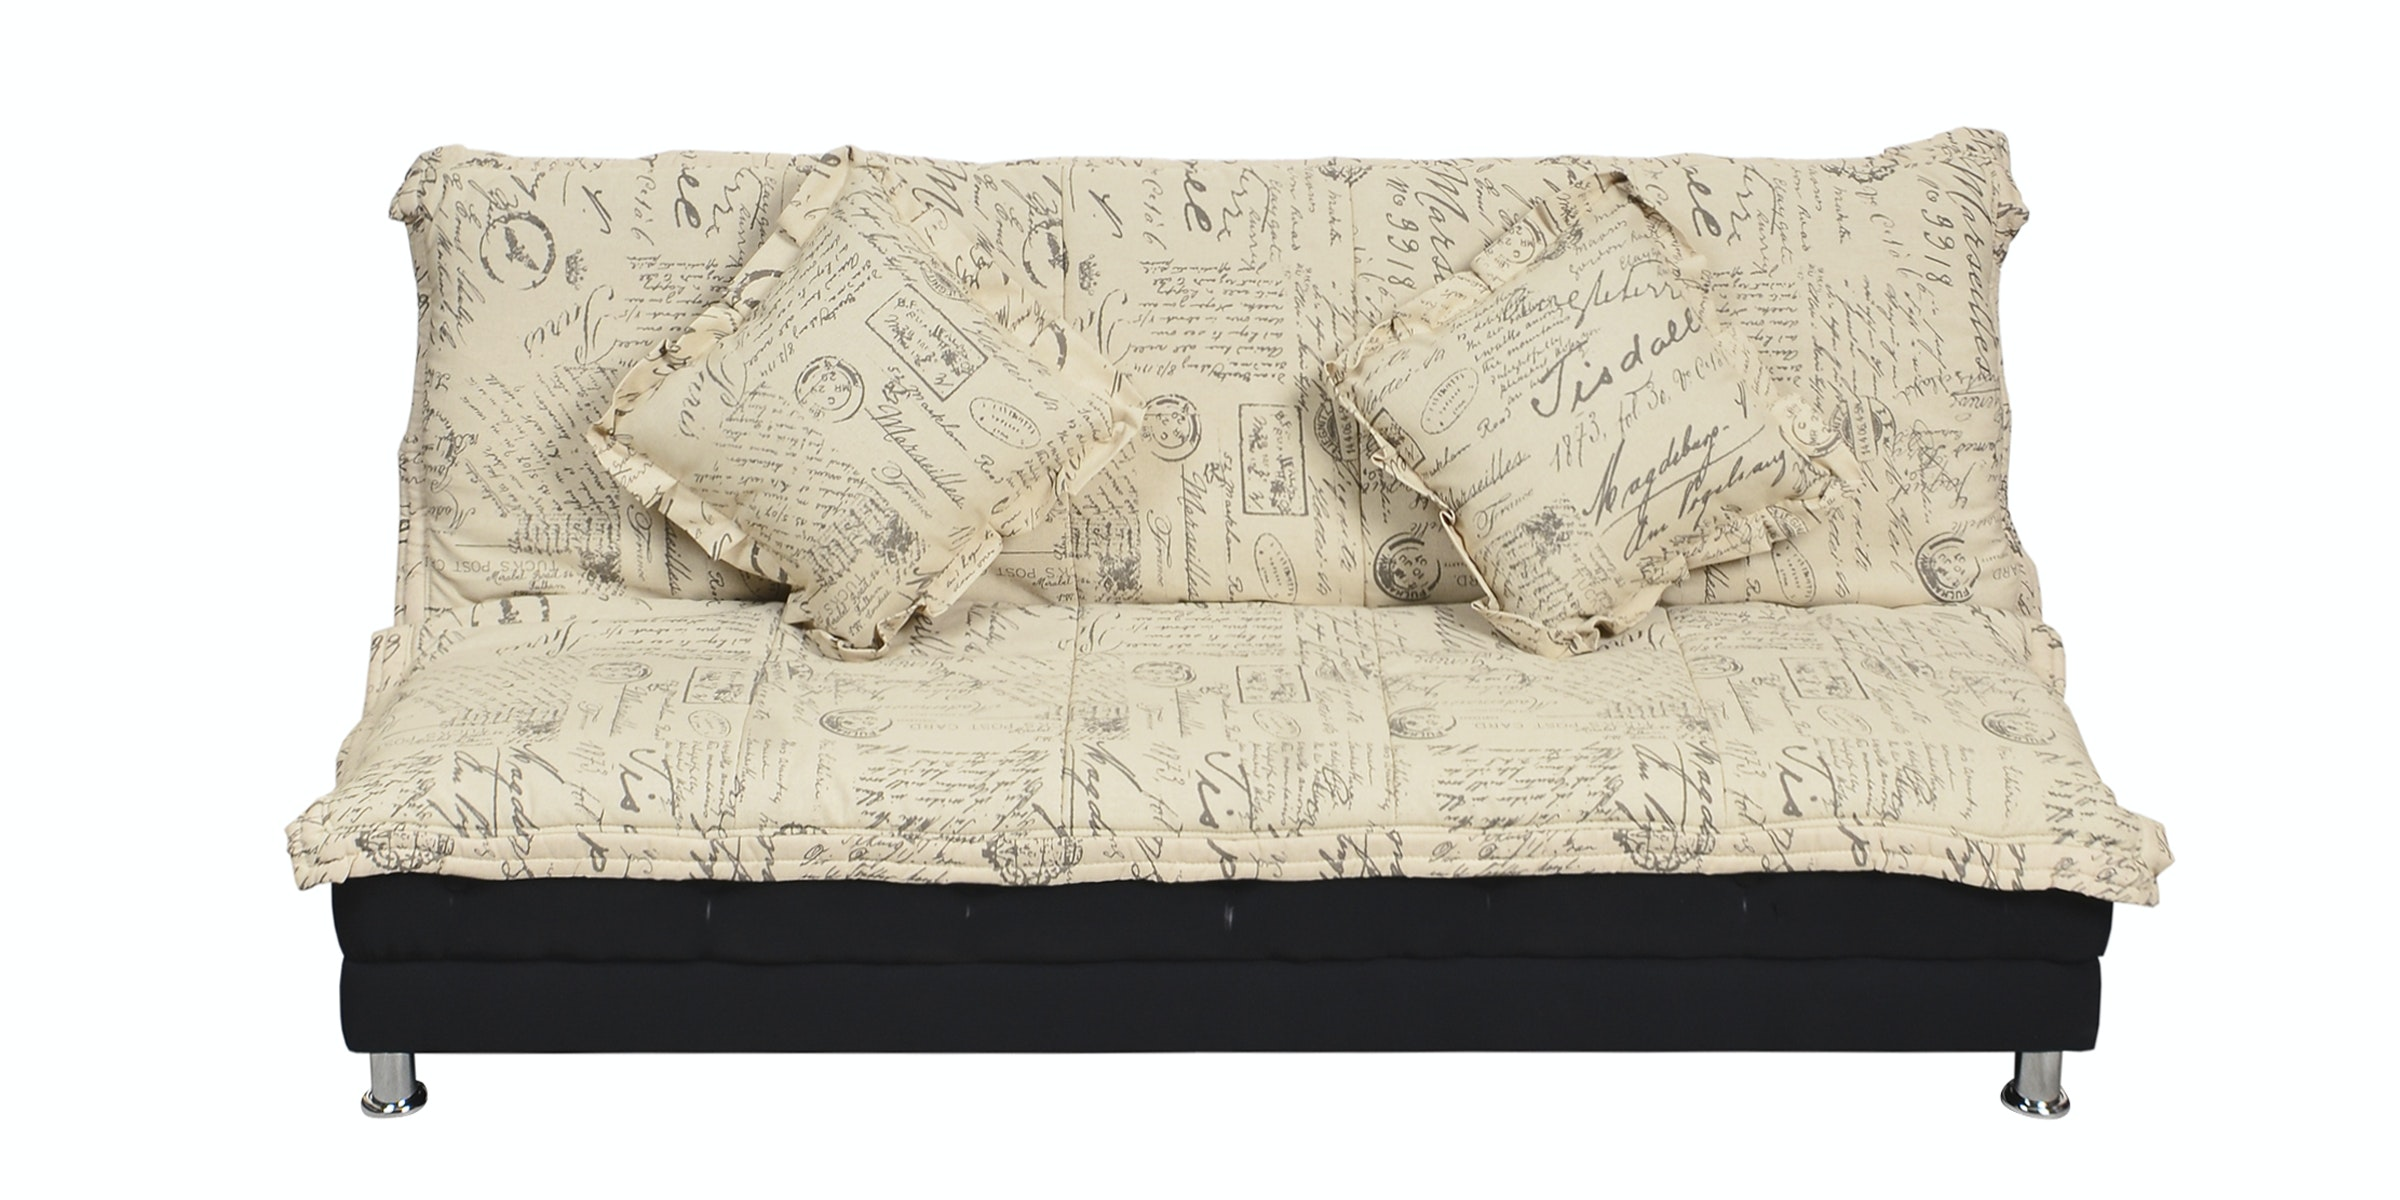 OLC Sofabed Wellington Handwriting